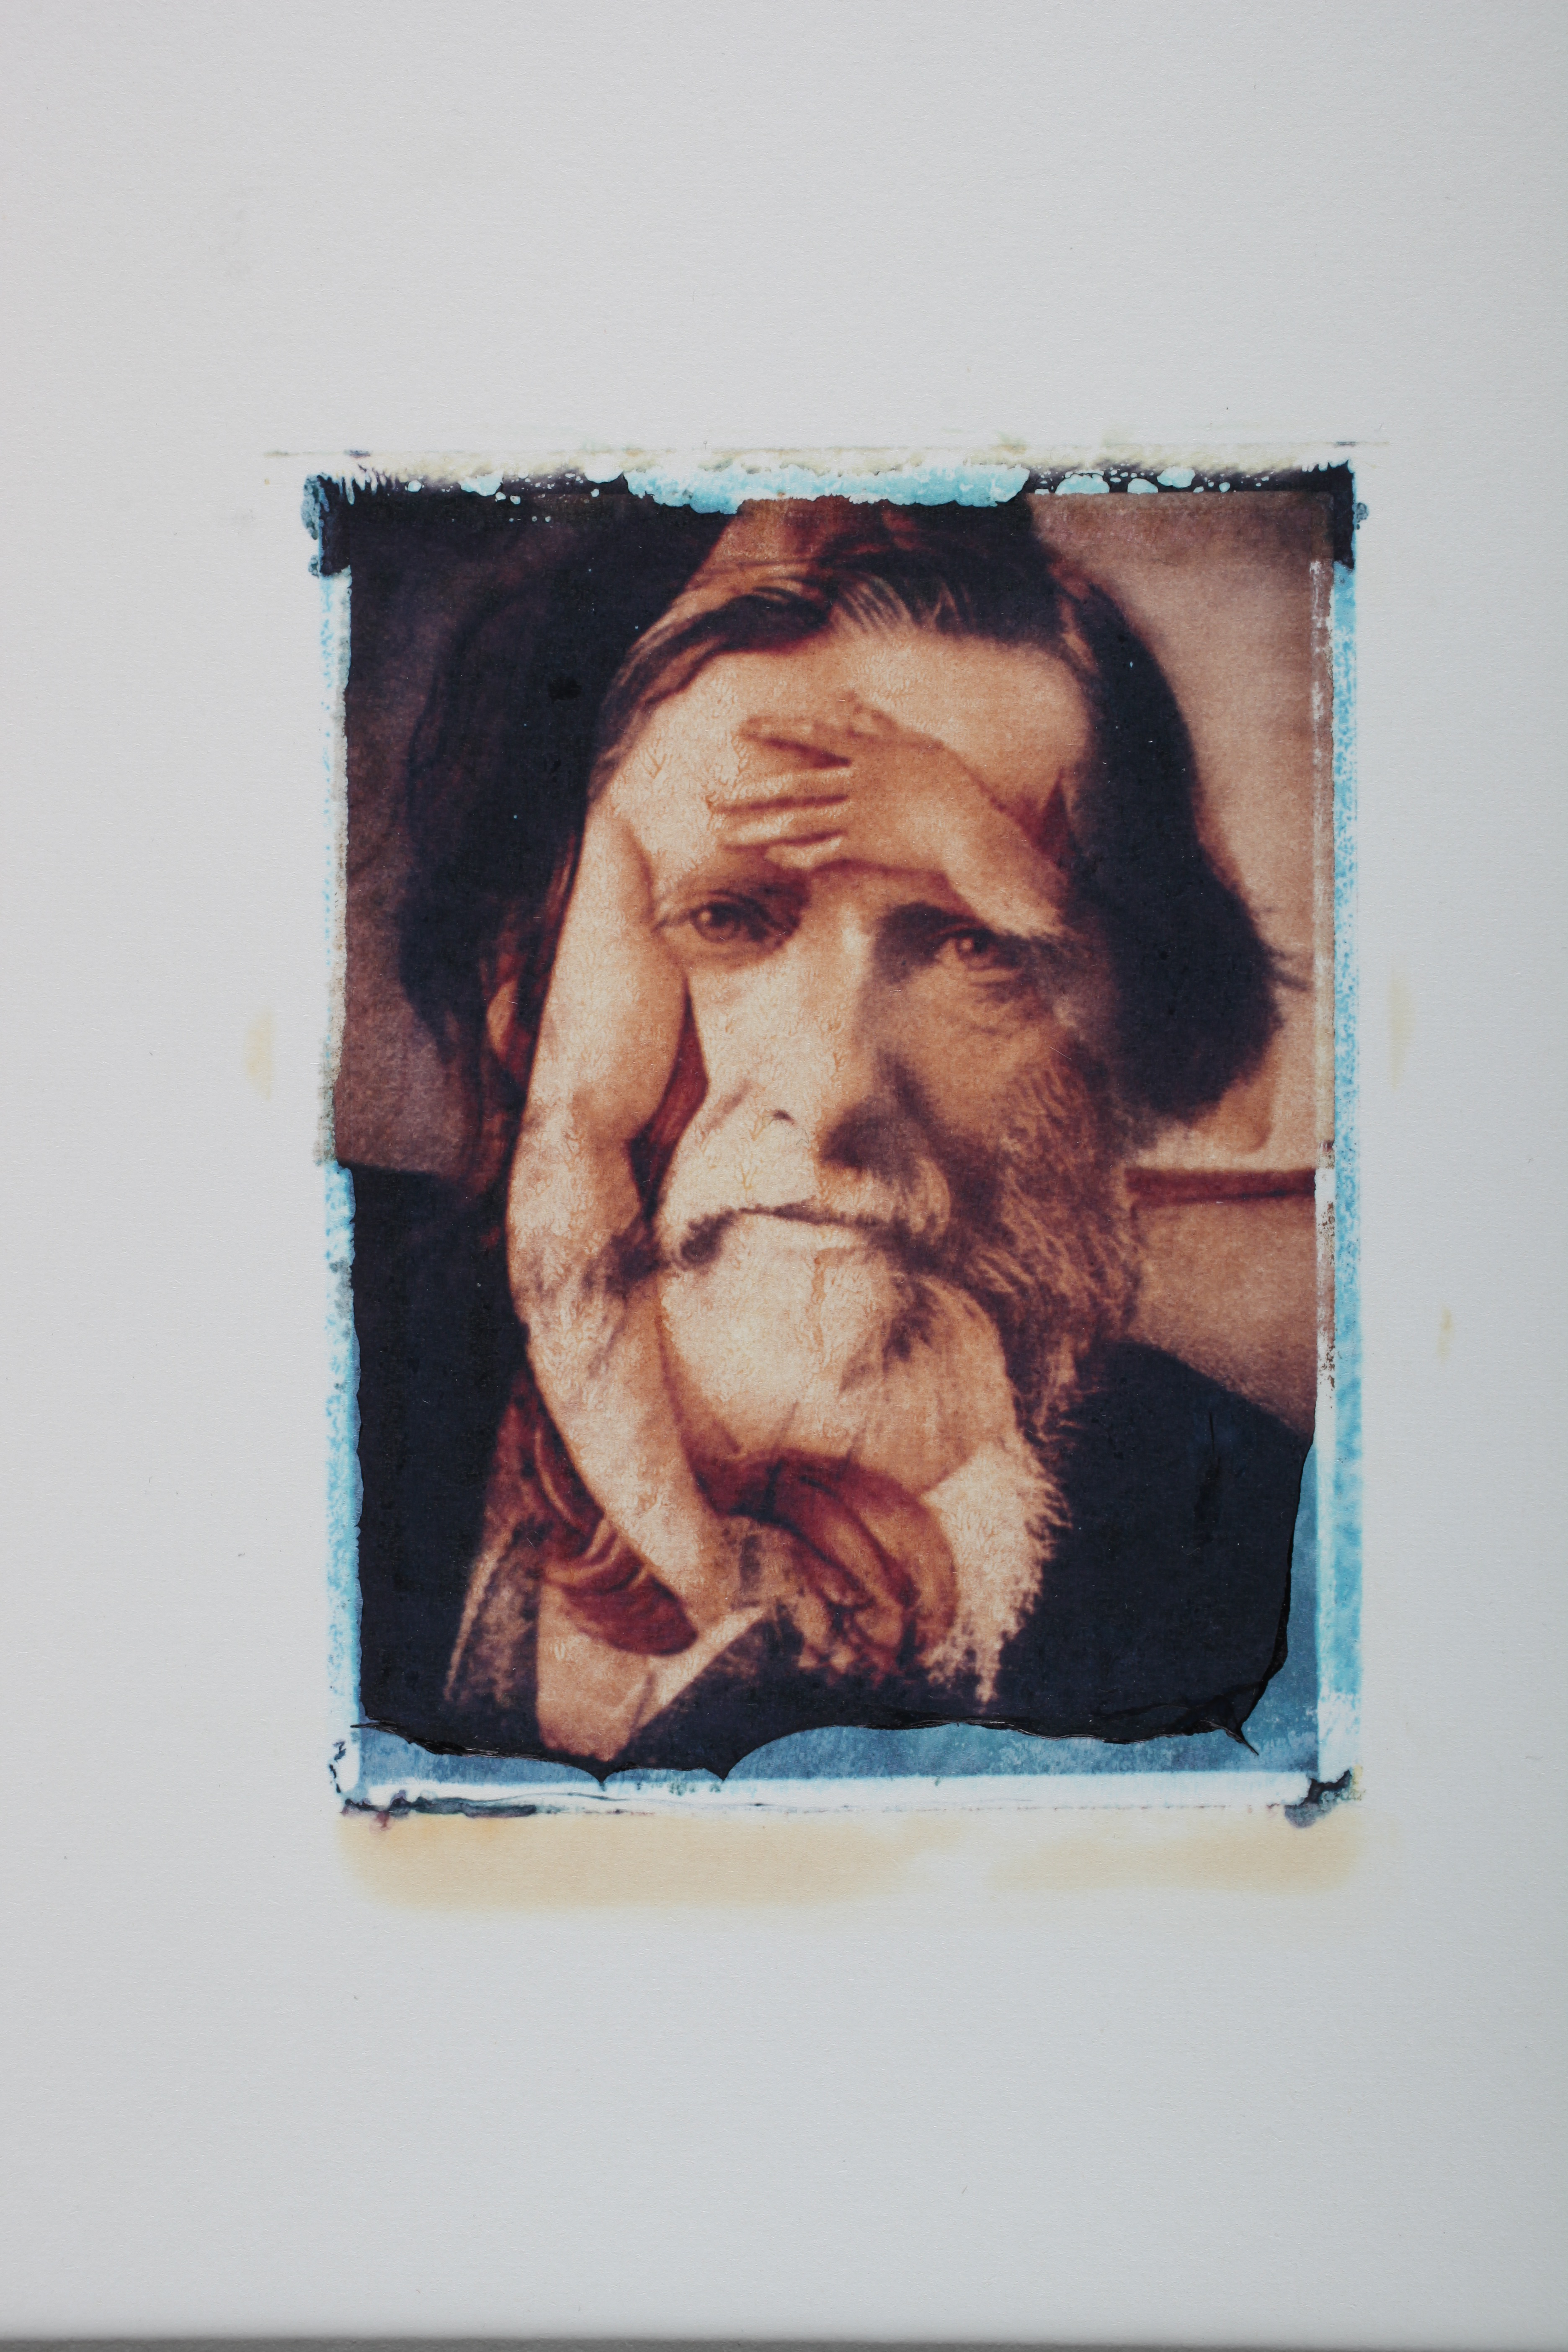 Multi-layered Polaroid image by Robert Seydel with man's bearded face and woman's nude figure